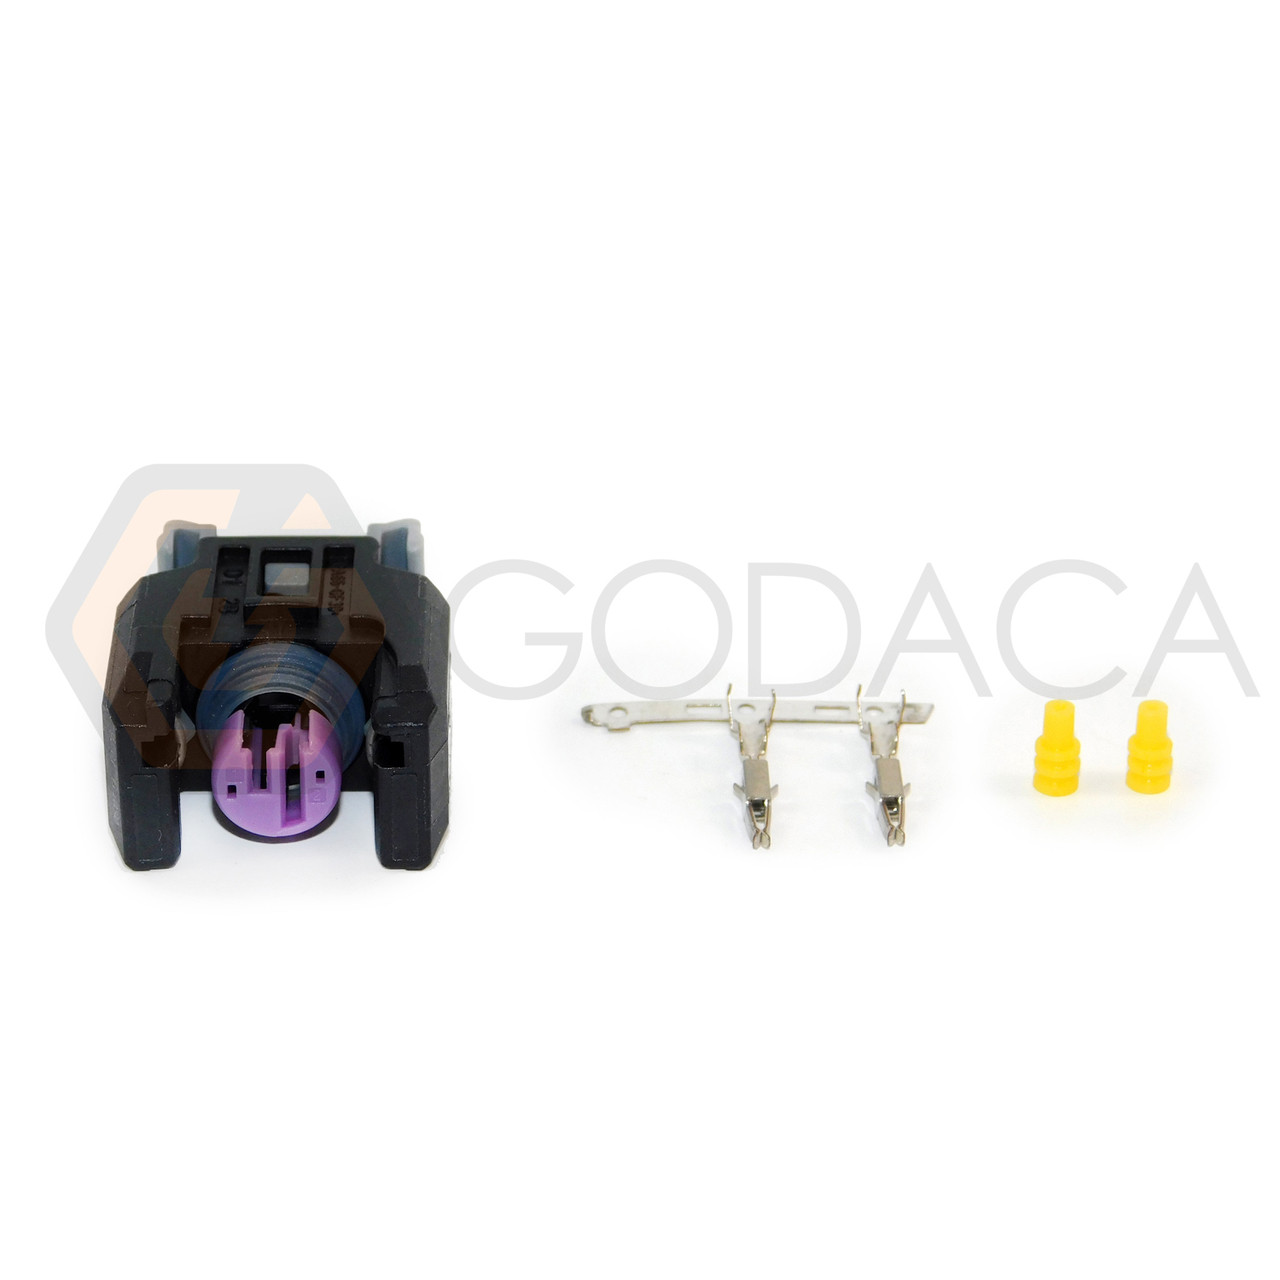 small resolution of 1x connector 2 way 2 pin for fuel injector 13816706 delphi w out wire godaca llc